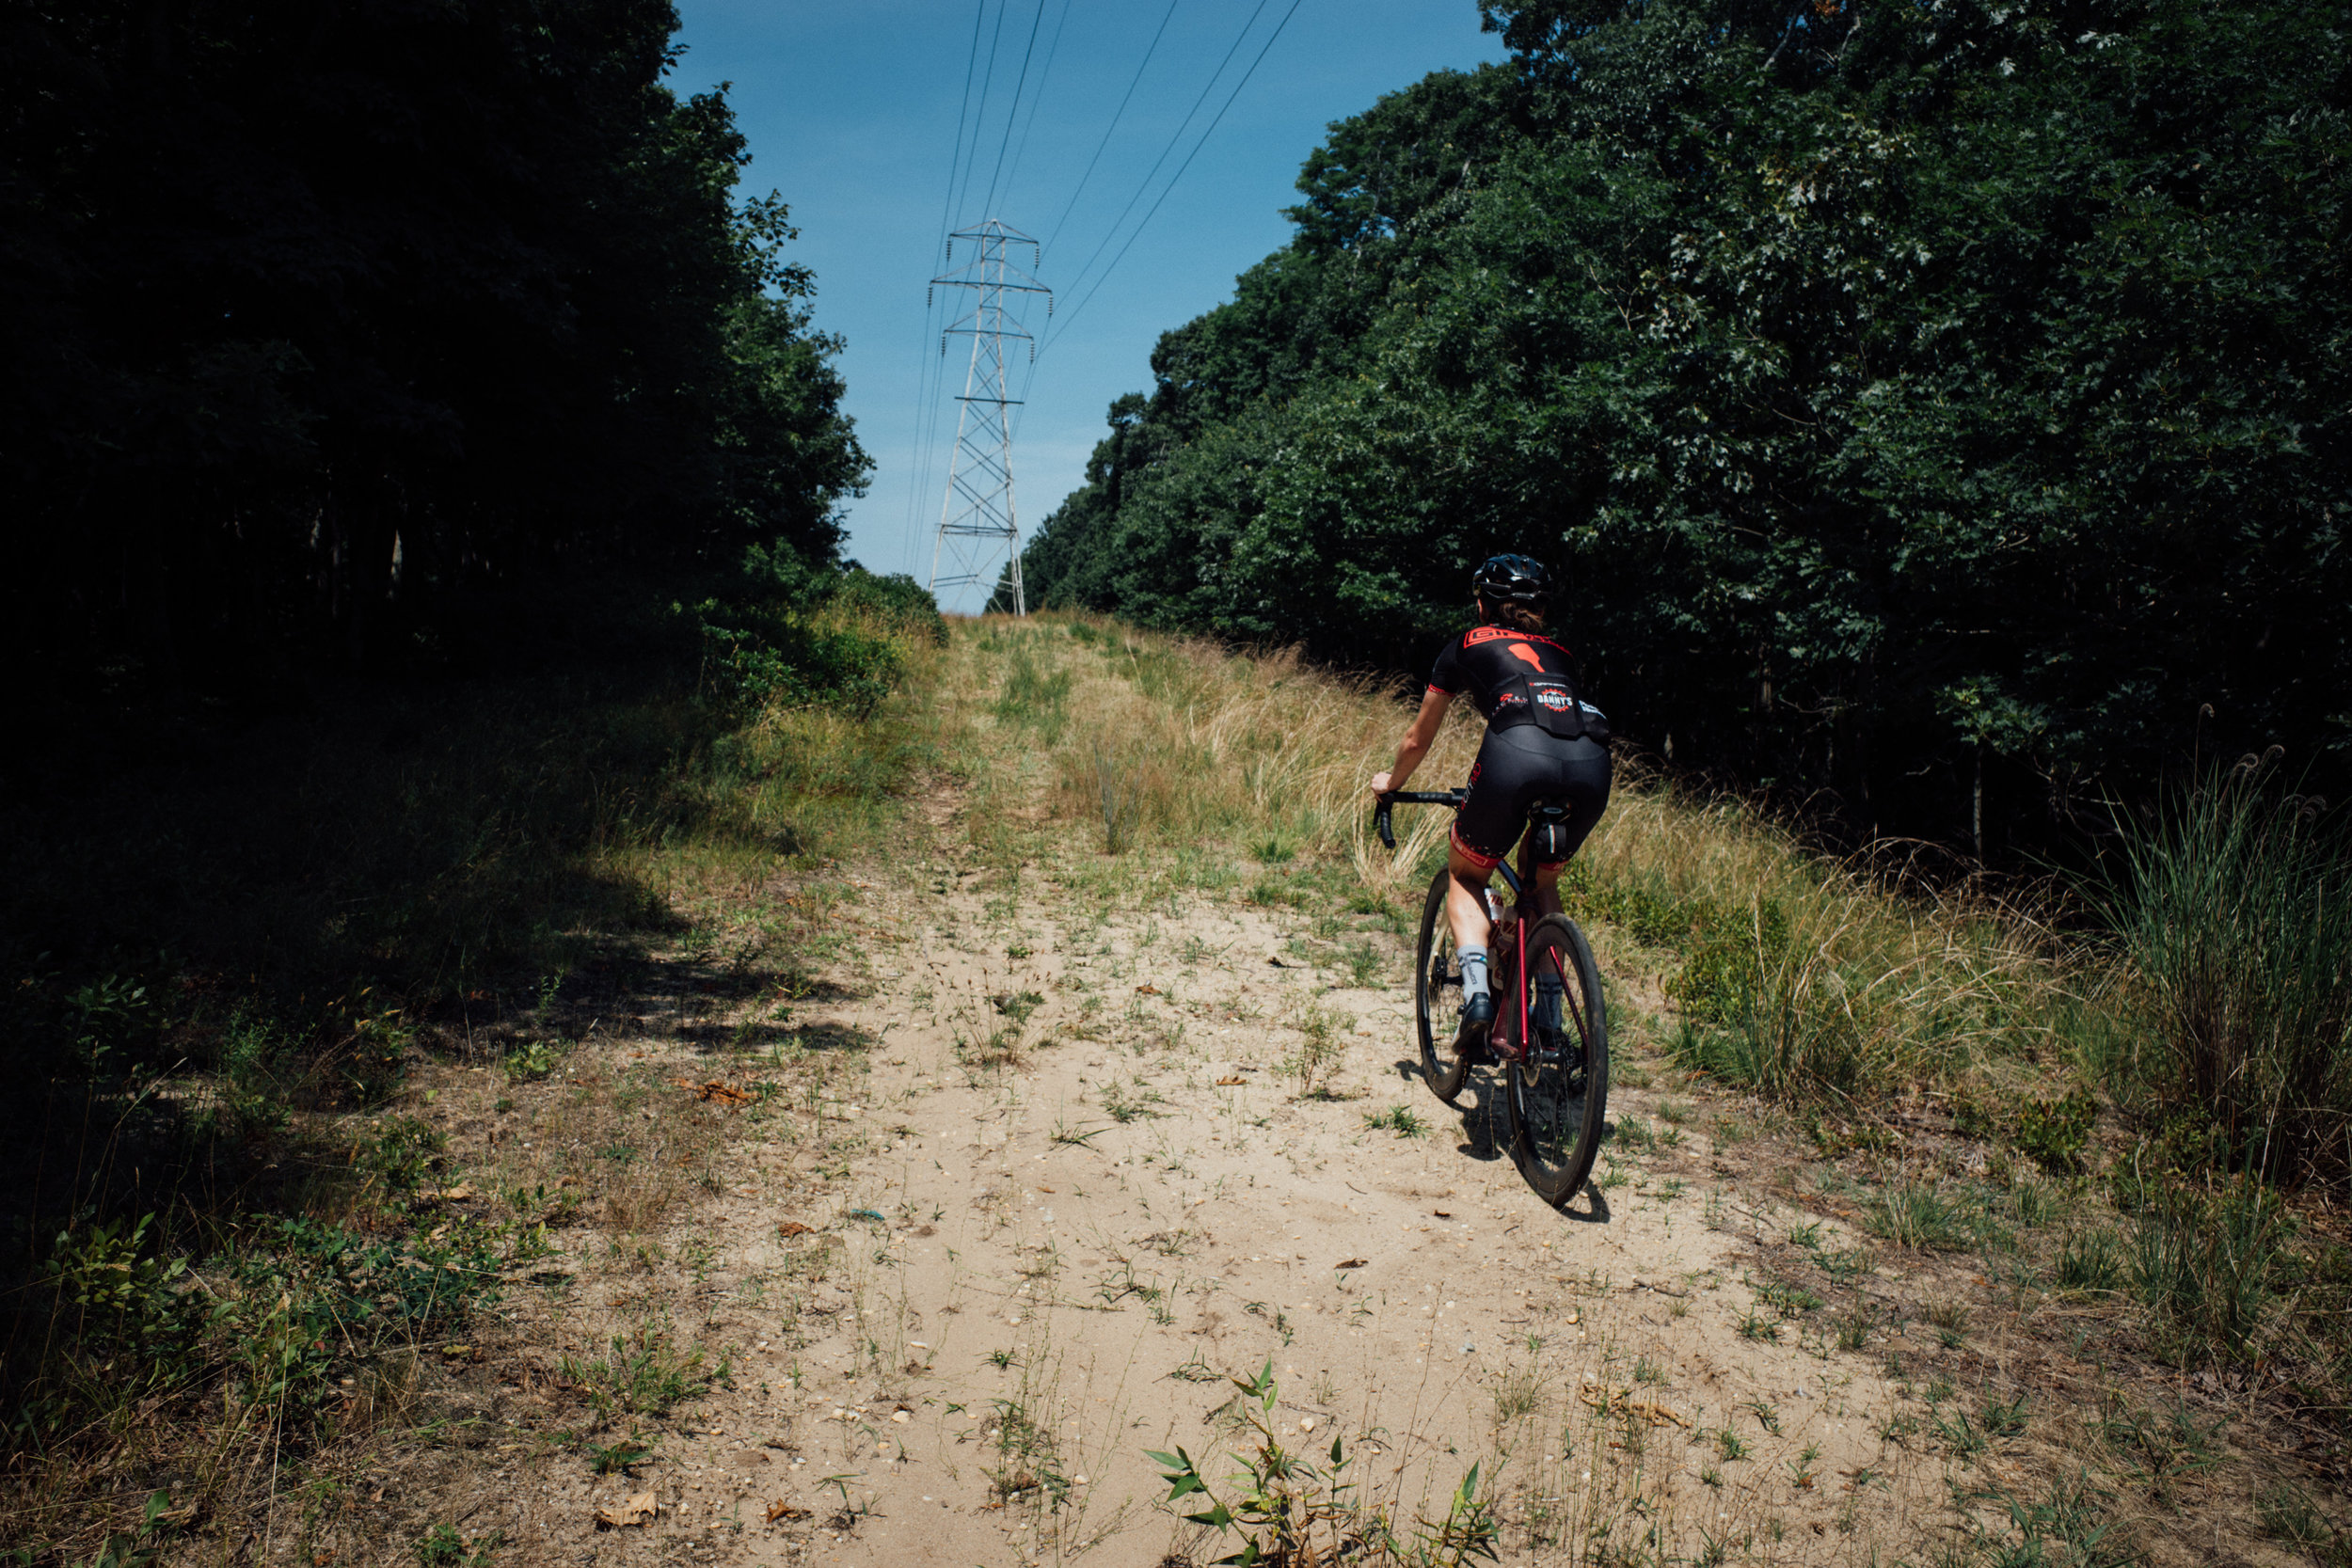 A favorite past time: getting lost on road bikes while riding 'trails' in the Hamptons.